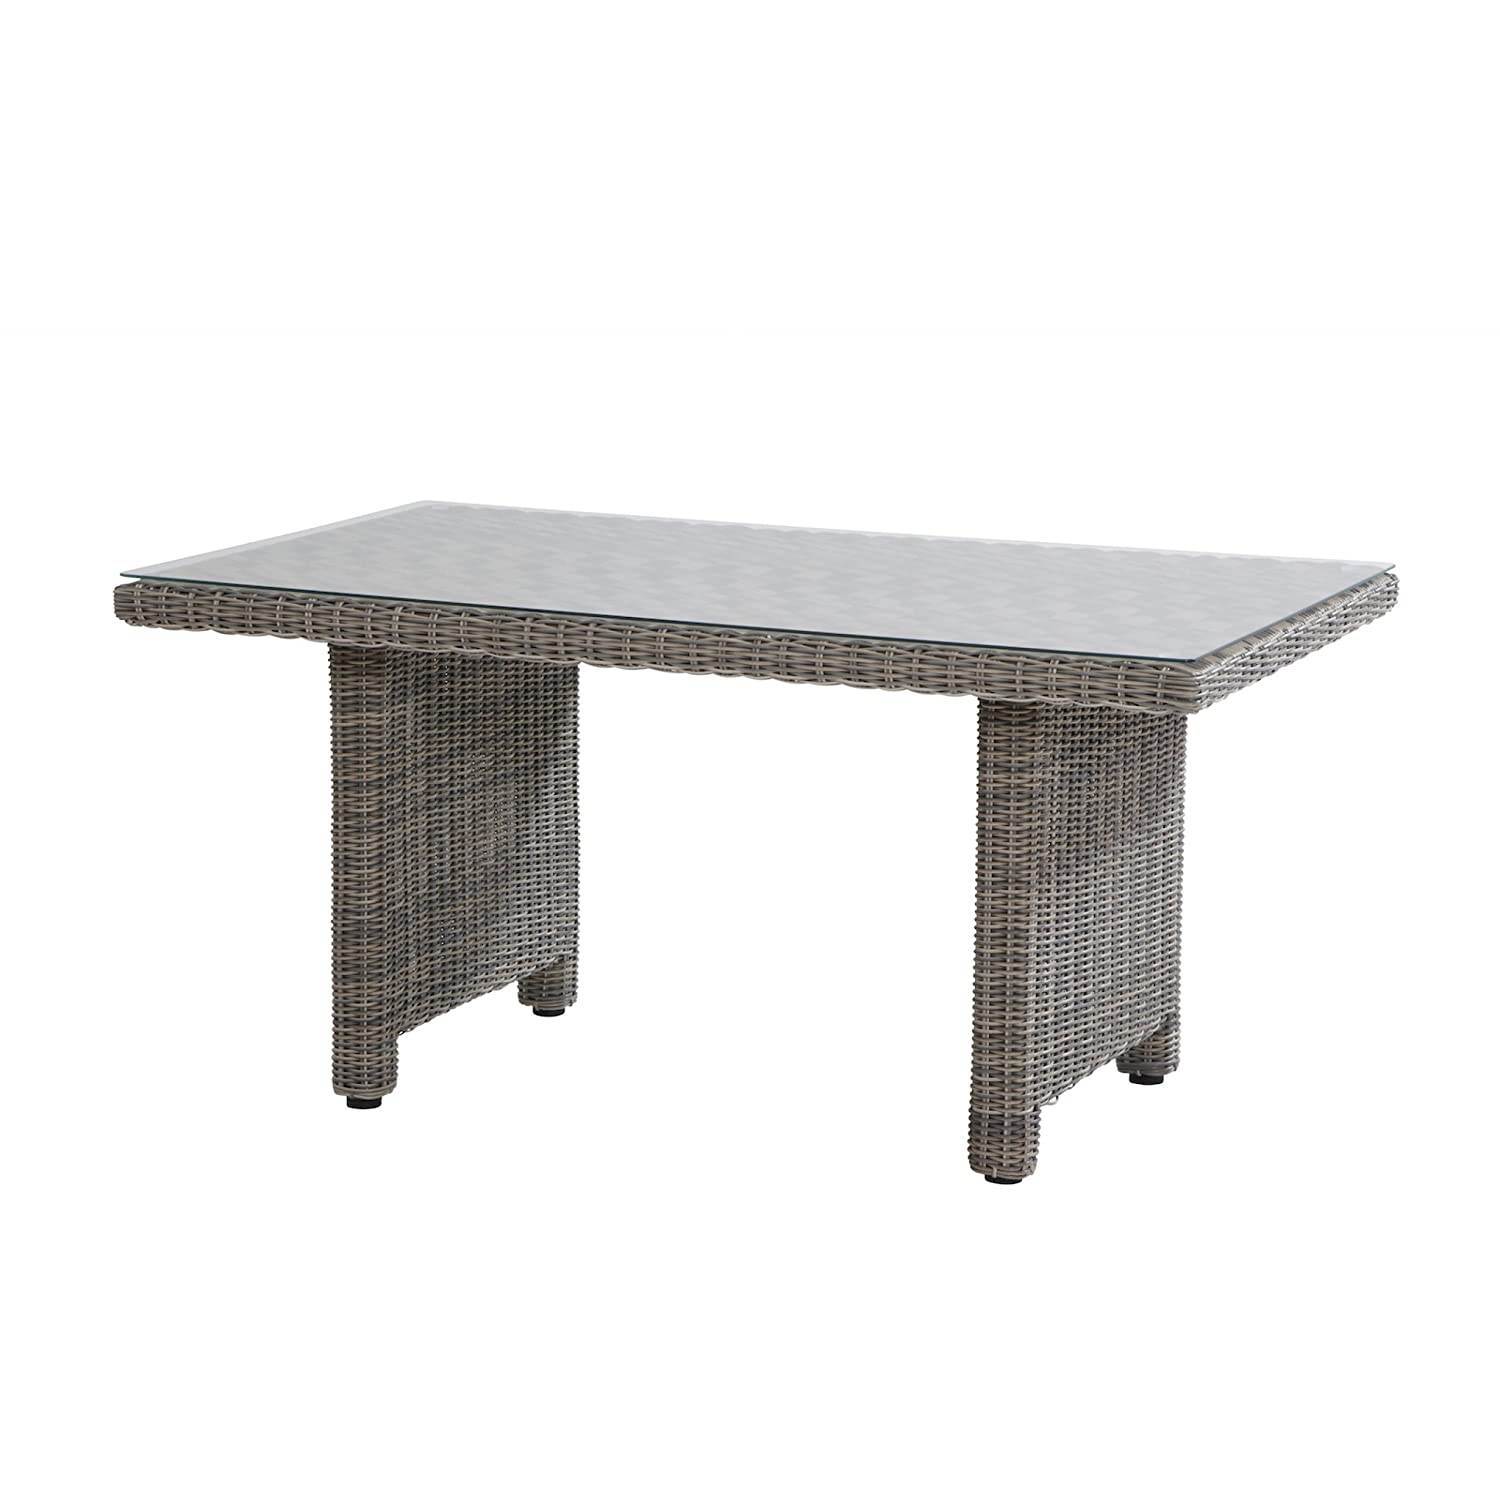 Aqua-Saar Dining Table Tom Cosy Geflecht Roca Esstisch 150 x 90 x 70 cm AS16798